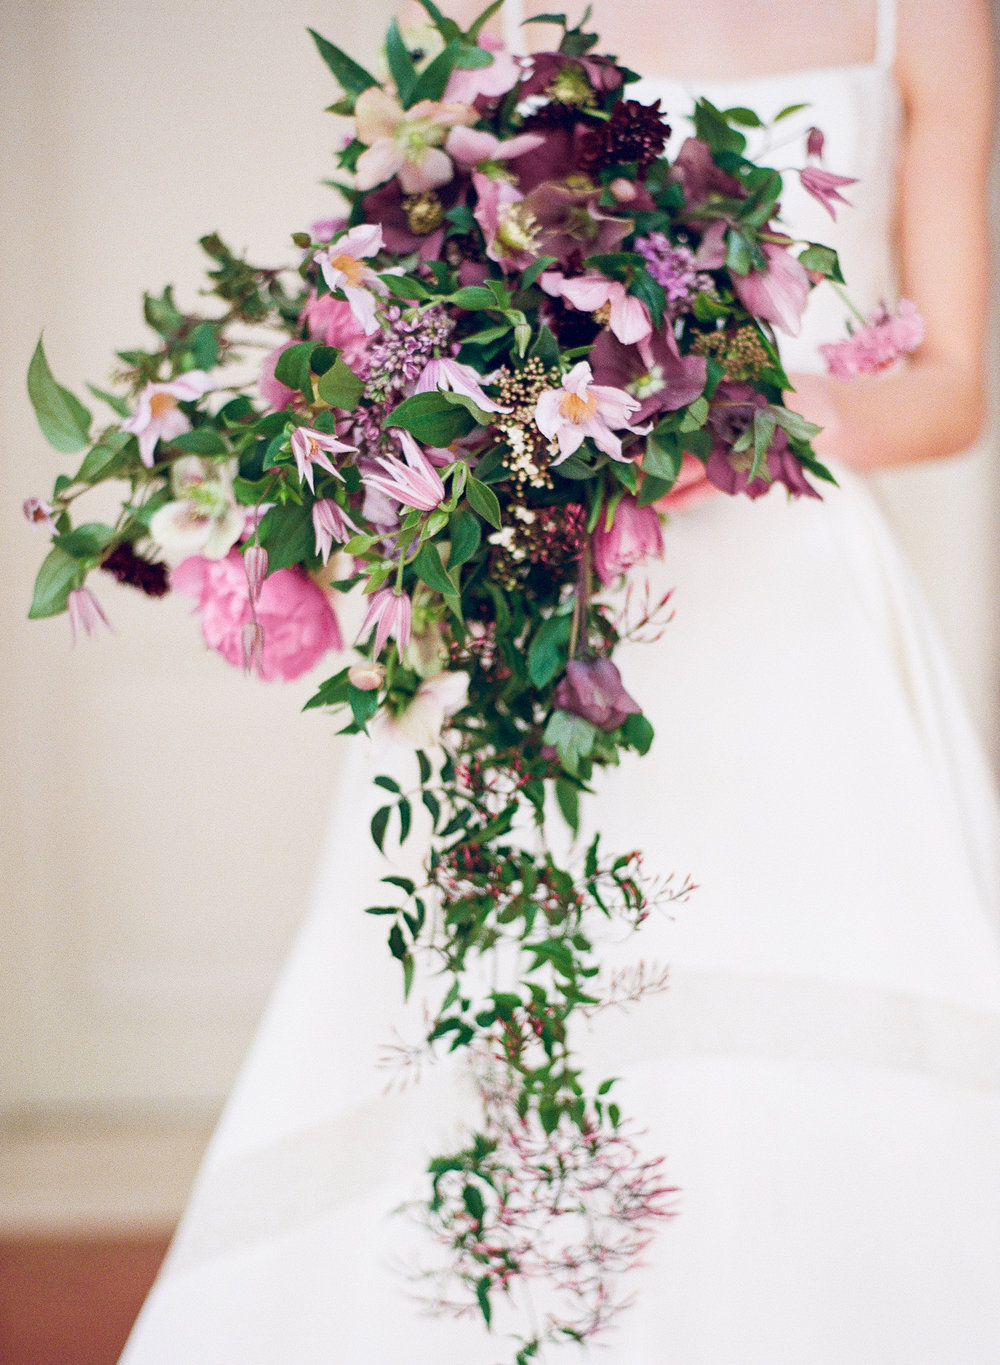 purple wedding bouquet | The Wildflowers is an event planning and design company inspiring stylish brides and grooms to dream a better dream for their wedding day. Follow along on instagram: @ thewildflowers_com